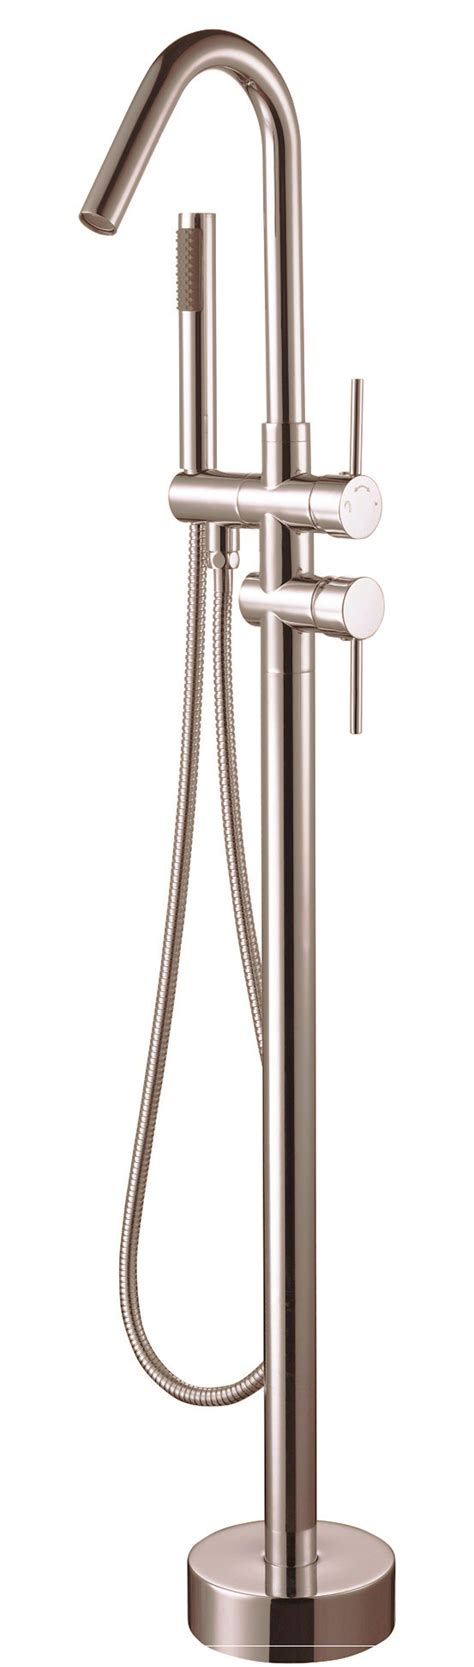 Freestanding Tub Faucets Brushed Nickel by Lazza Ii Freestanding Tub Faucet Brushed Nickel